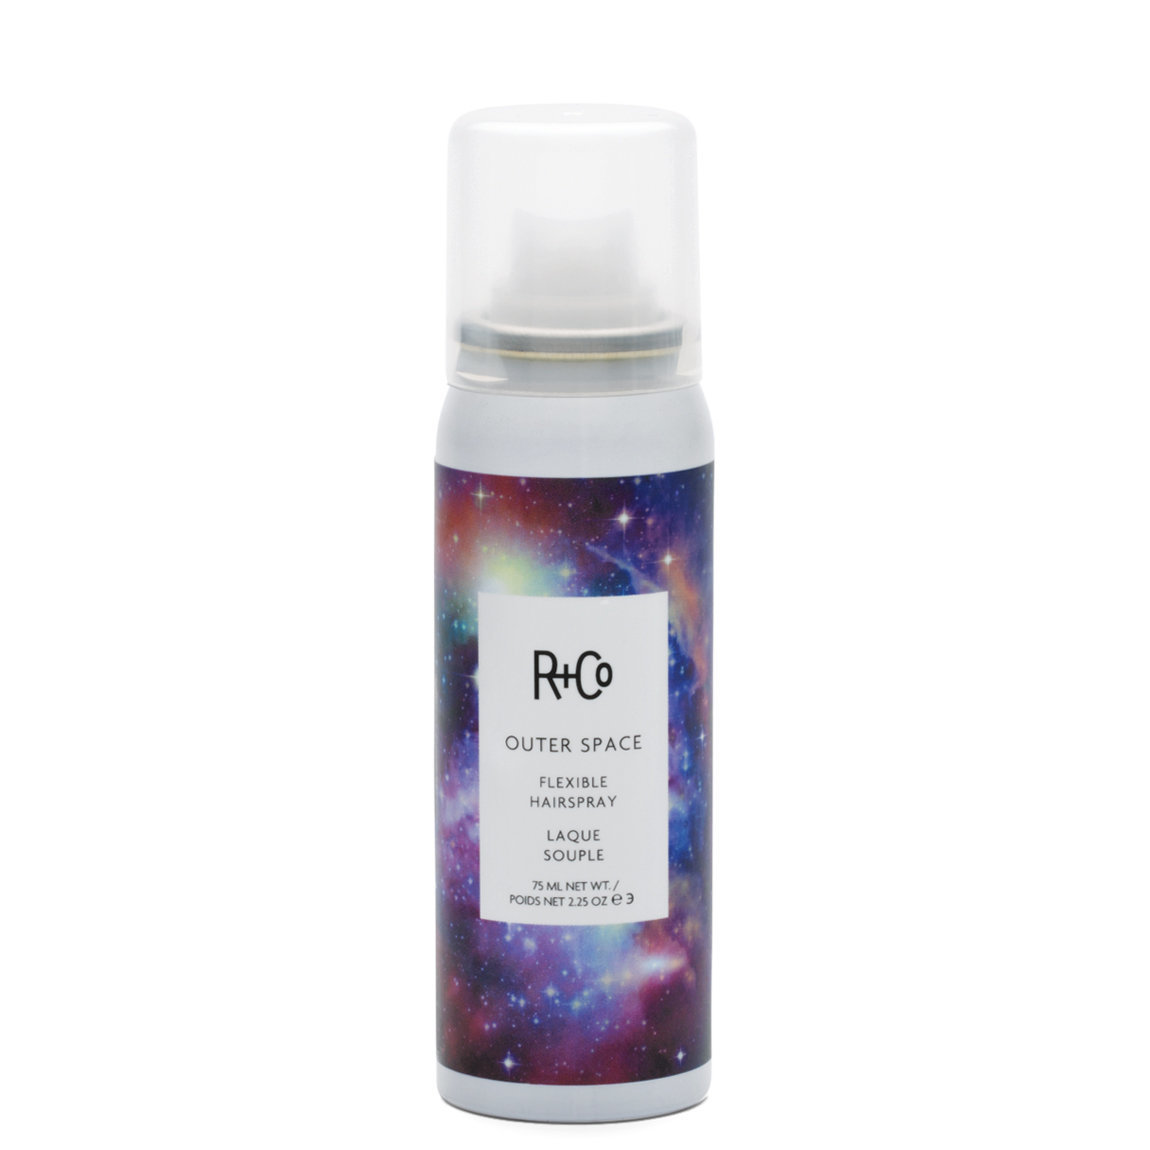 R+Co Outer Space Flexible Hairspray 2.25 oz alternative view 1 - product swatch.